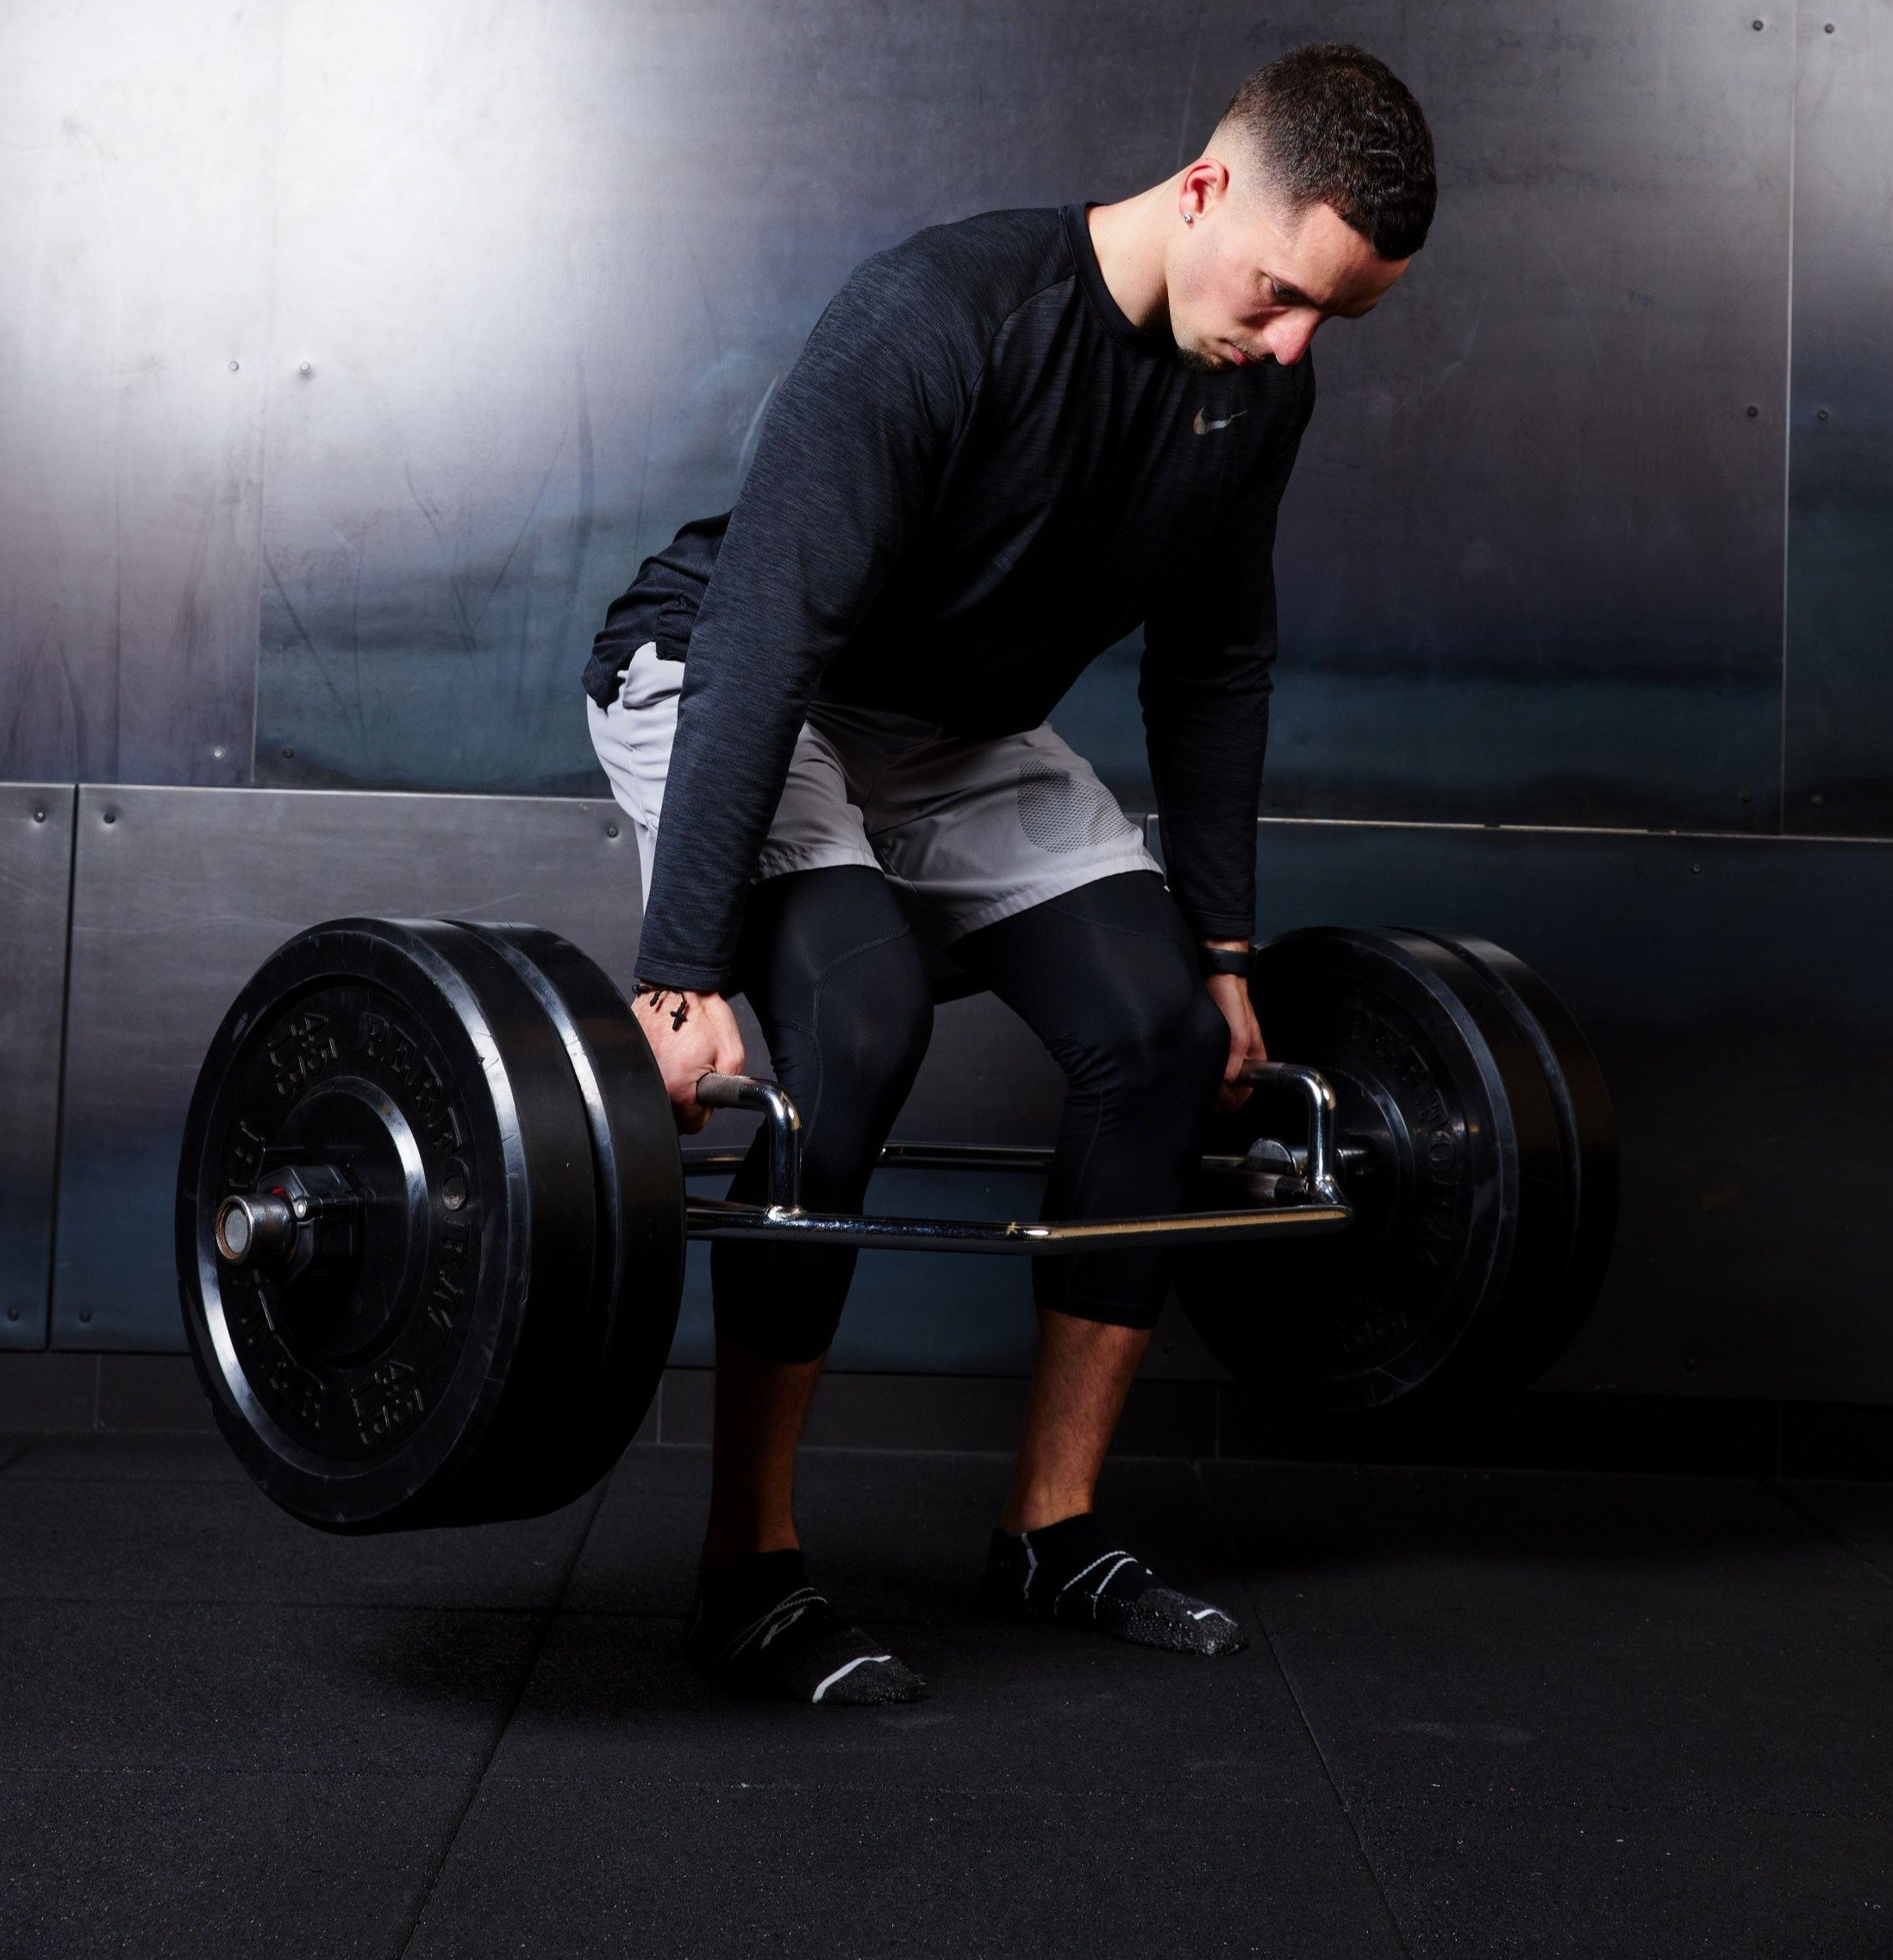 Man in the gym mid-deadlift with pedestal socks on